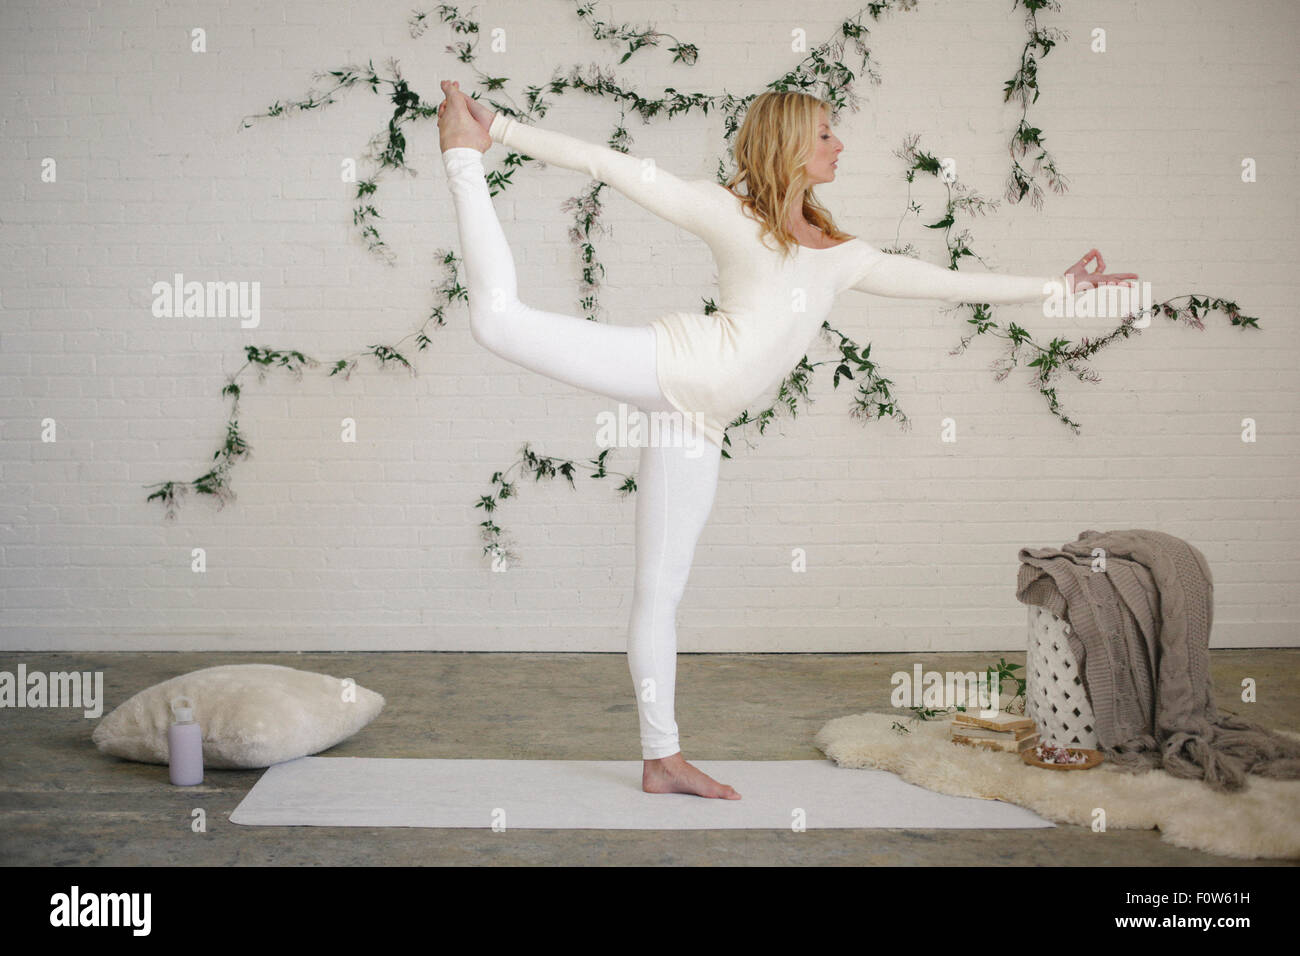 A blonde woman in a white leotard and leggings, standing on a white mat in a room, standing on one leg and arms - Stock Image